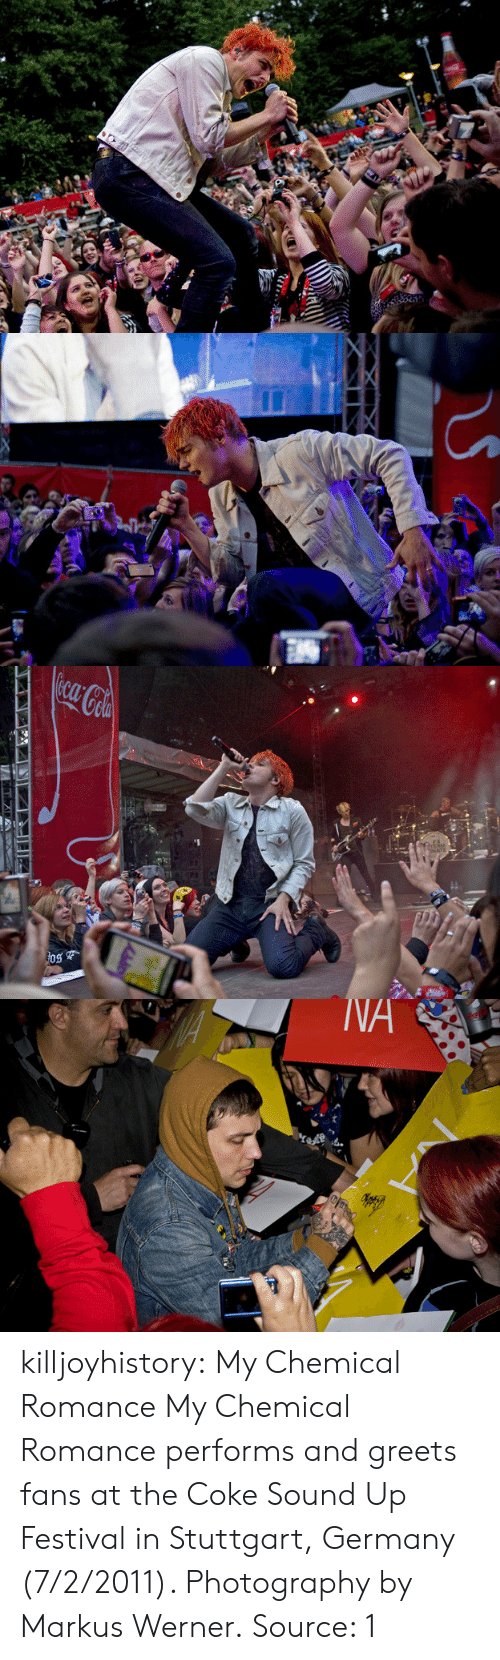 Tumblr, Blog, and Flickr: killjoyhistory: My Chemical Romance My Chemical Romance performs and greets fans at the Coke Sound Up Festival in Stuttgart, Germany (7/2/2011). Photography by Markus Werner. Source: 1